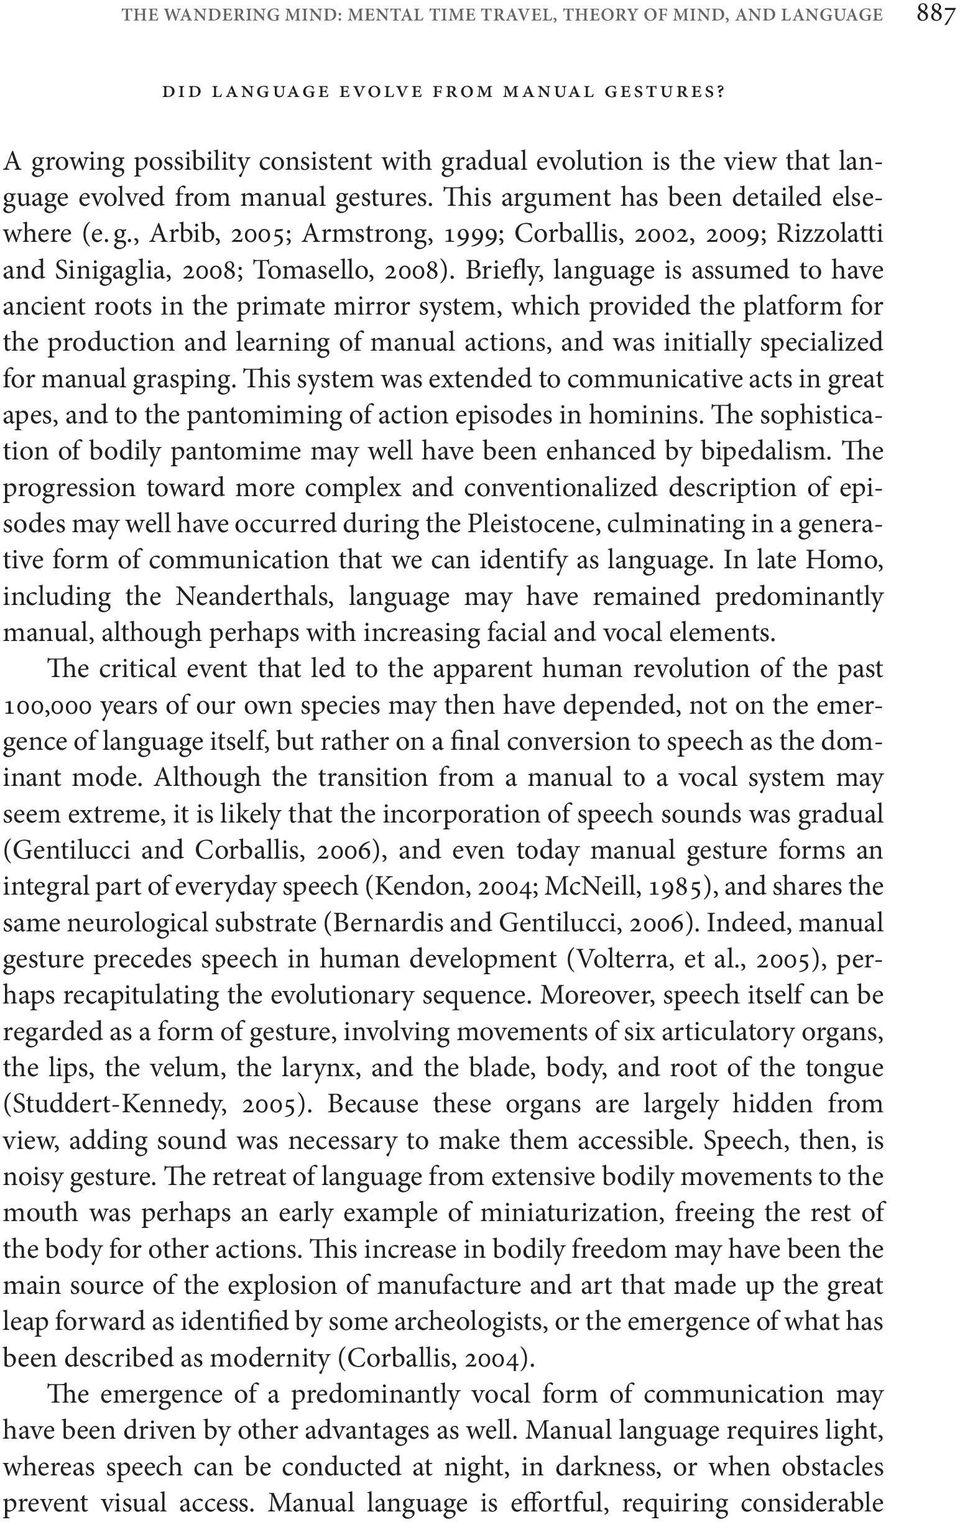 Briefly, language is assumed to have ancient roots in the primate mirror system, which provided the platform for the production and learning of manual actions, and was initially specialized for